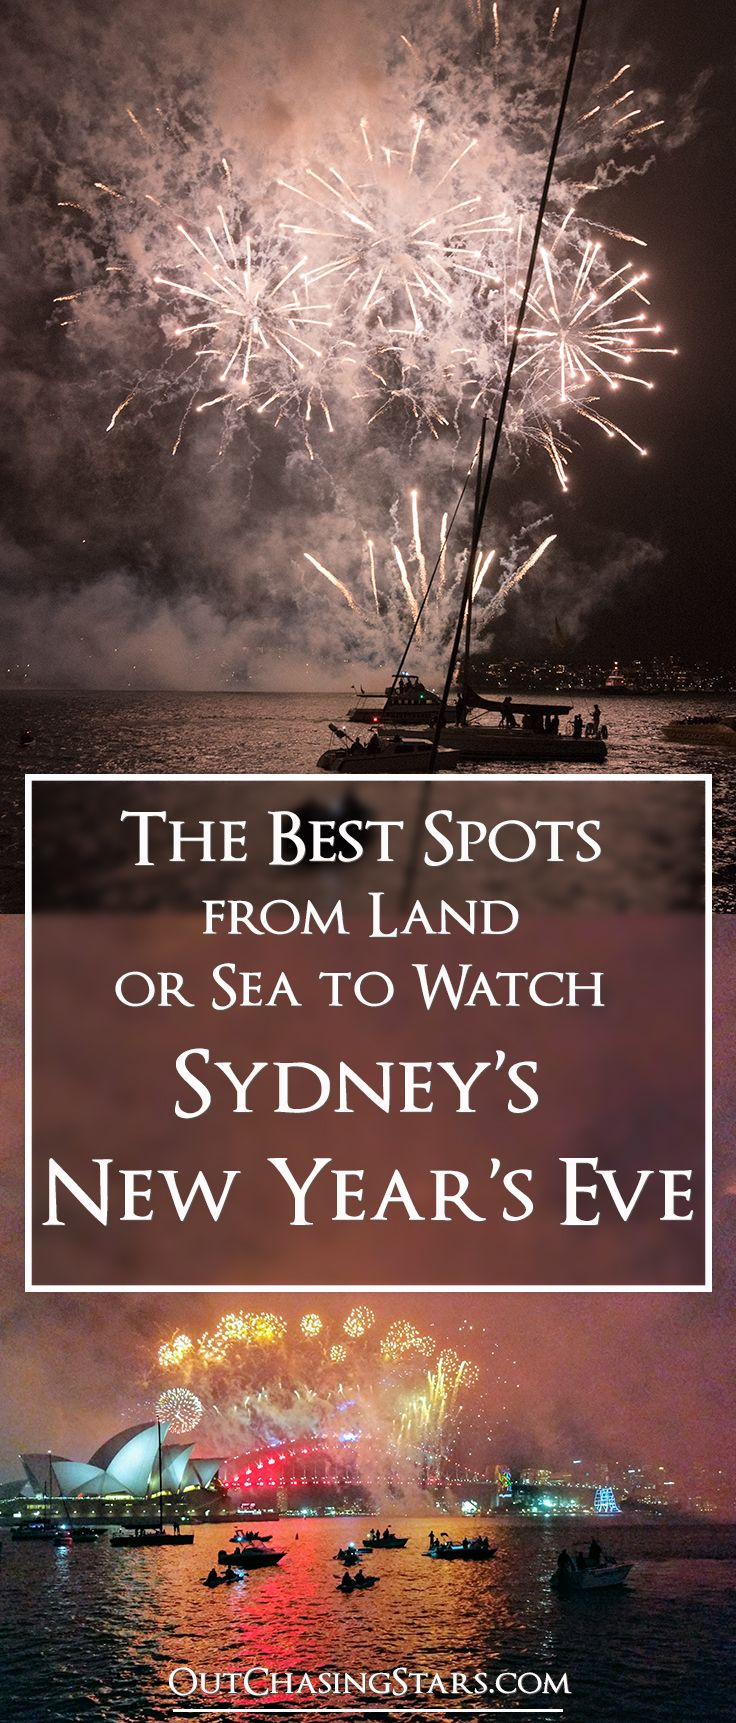 We get the best view of the New Year's Eve Sydney show. Here's how you can get the best view too!